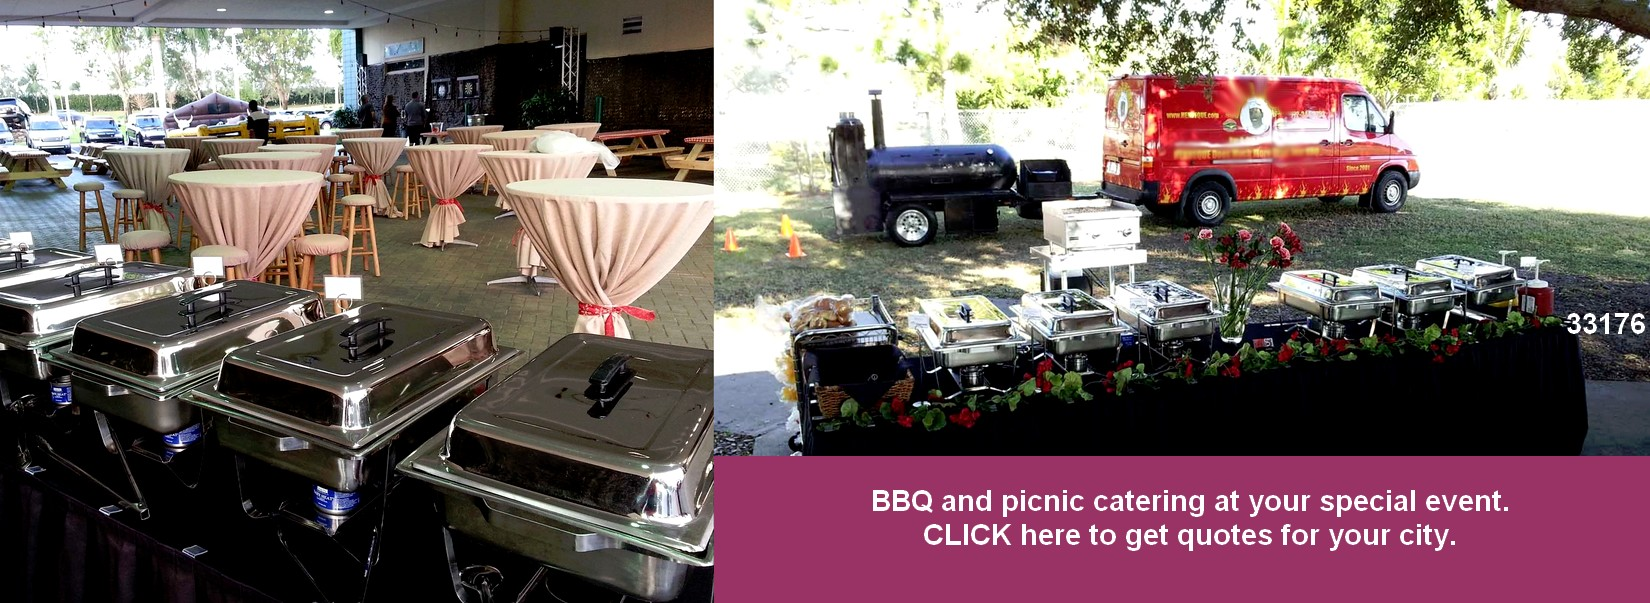 bbq catering  on site catering designs